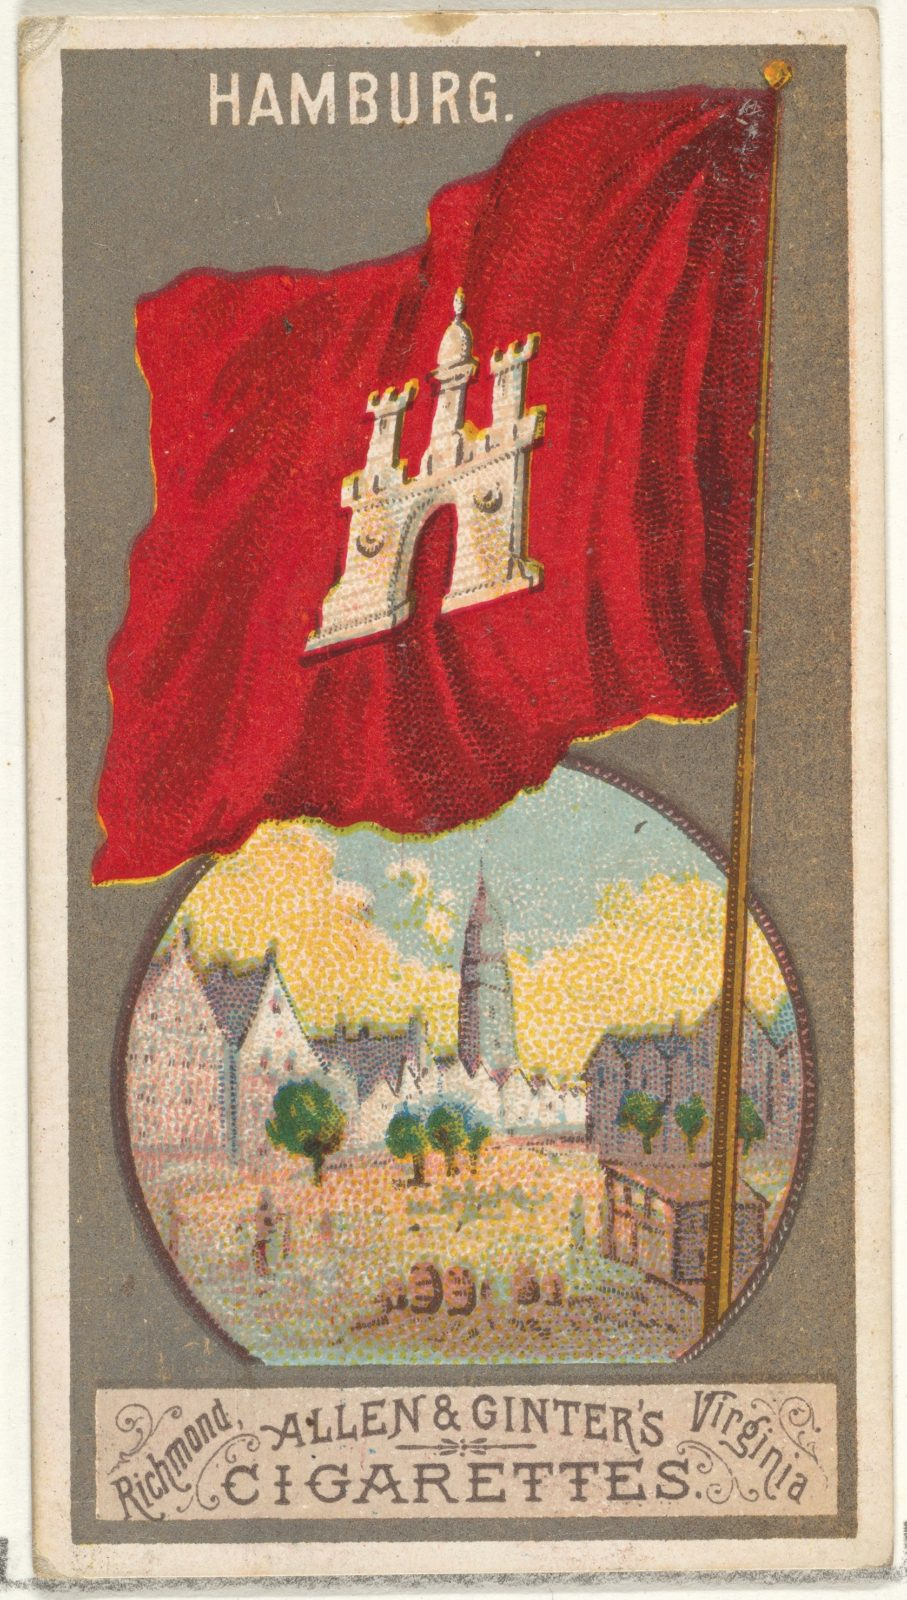 Hamburg, from the City Flags series (N6) for Allen & Ginter Cigarettes Brands